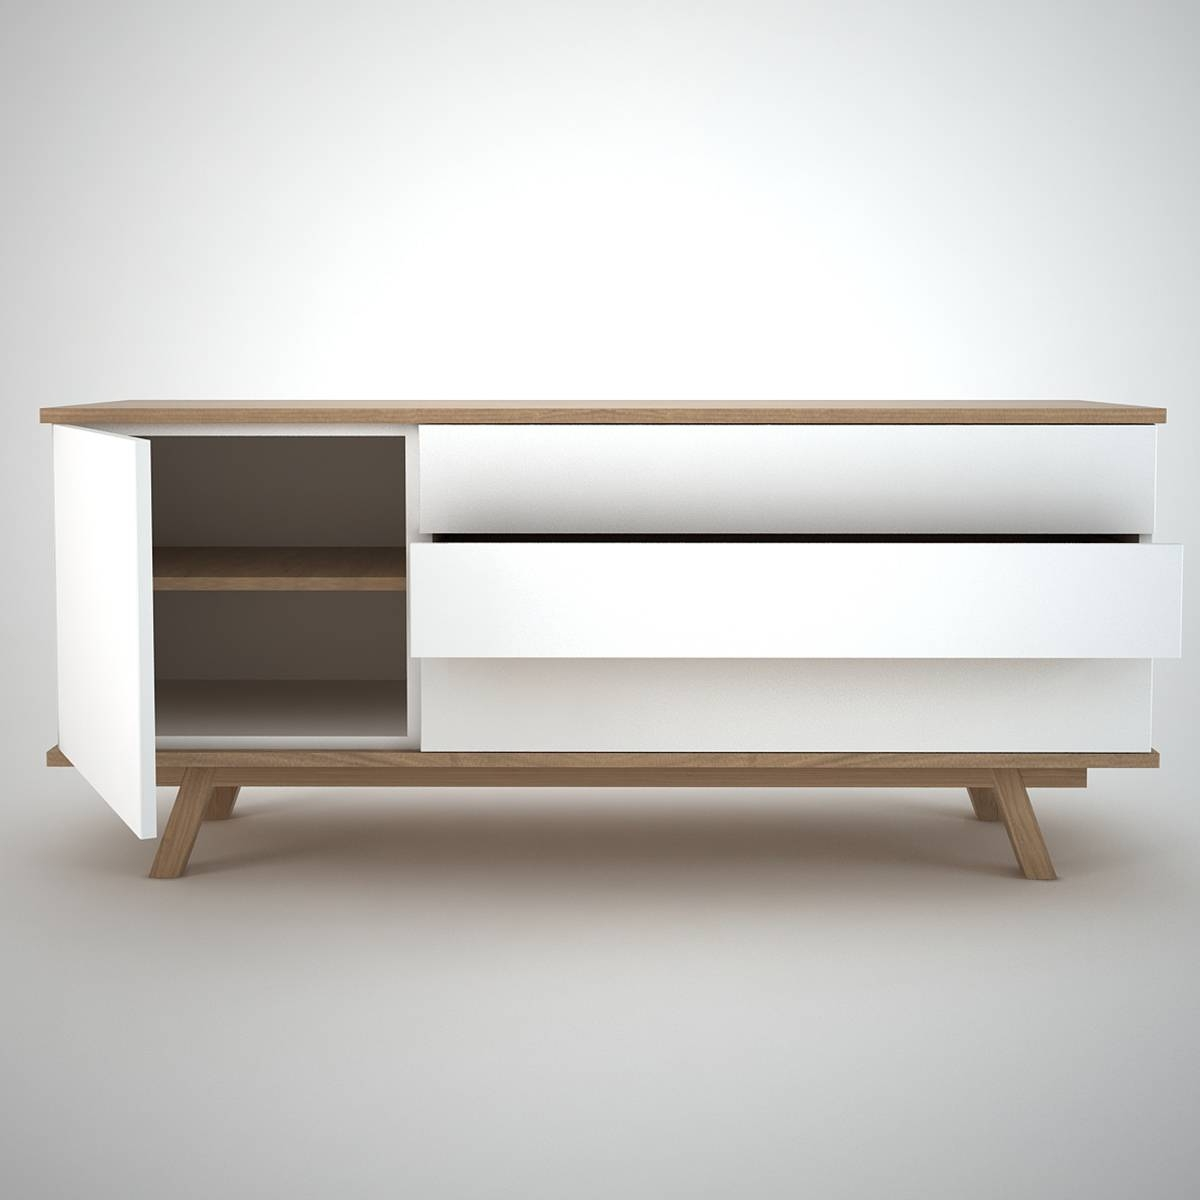 Furniture: Beautiful Profile Modern Sideboard For Living Room inside Contemporary Sideboards (Image 13 of 30)